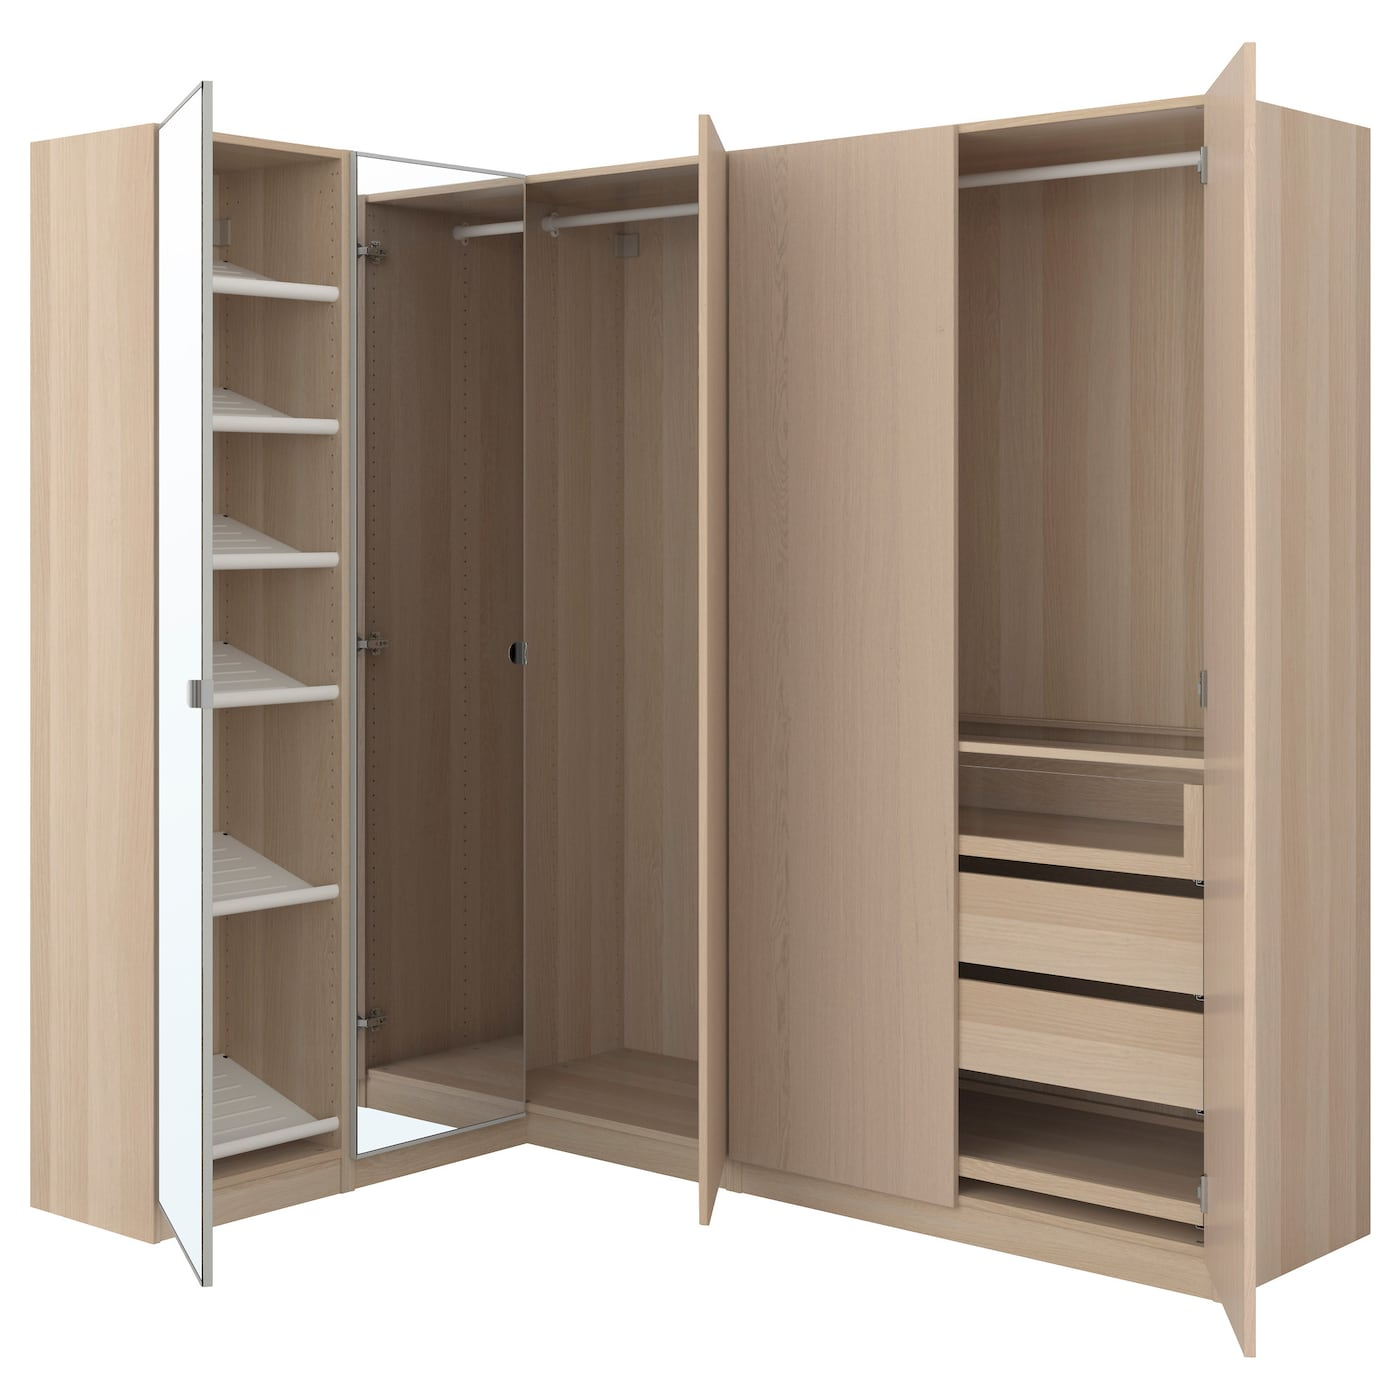 menar organizer fascinating laminate closet for inspiration closets true bedroom wardrobe trends designer brown wall creative google and charming home flooring lowes cabinet depot rubbermaid inserts organizers corner